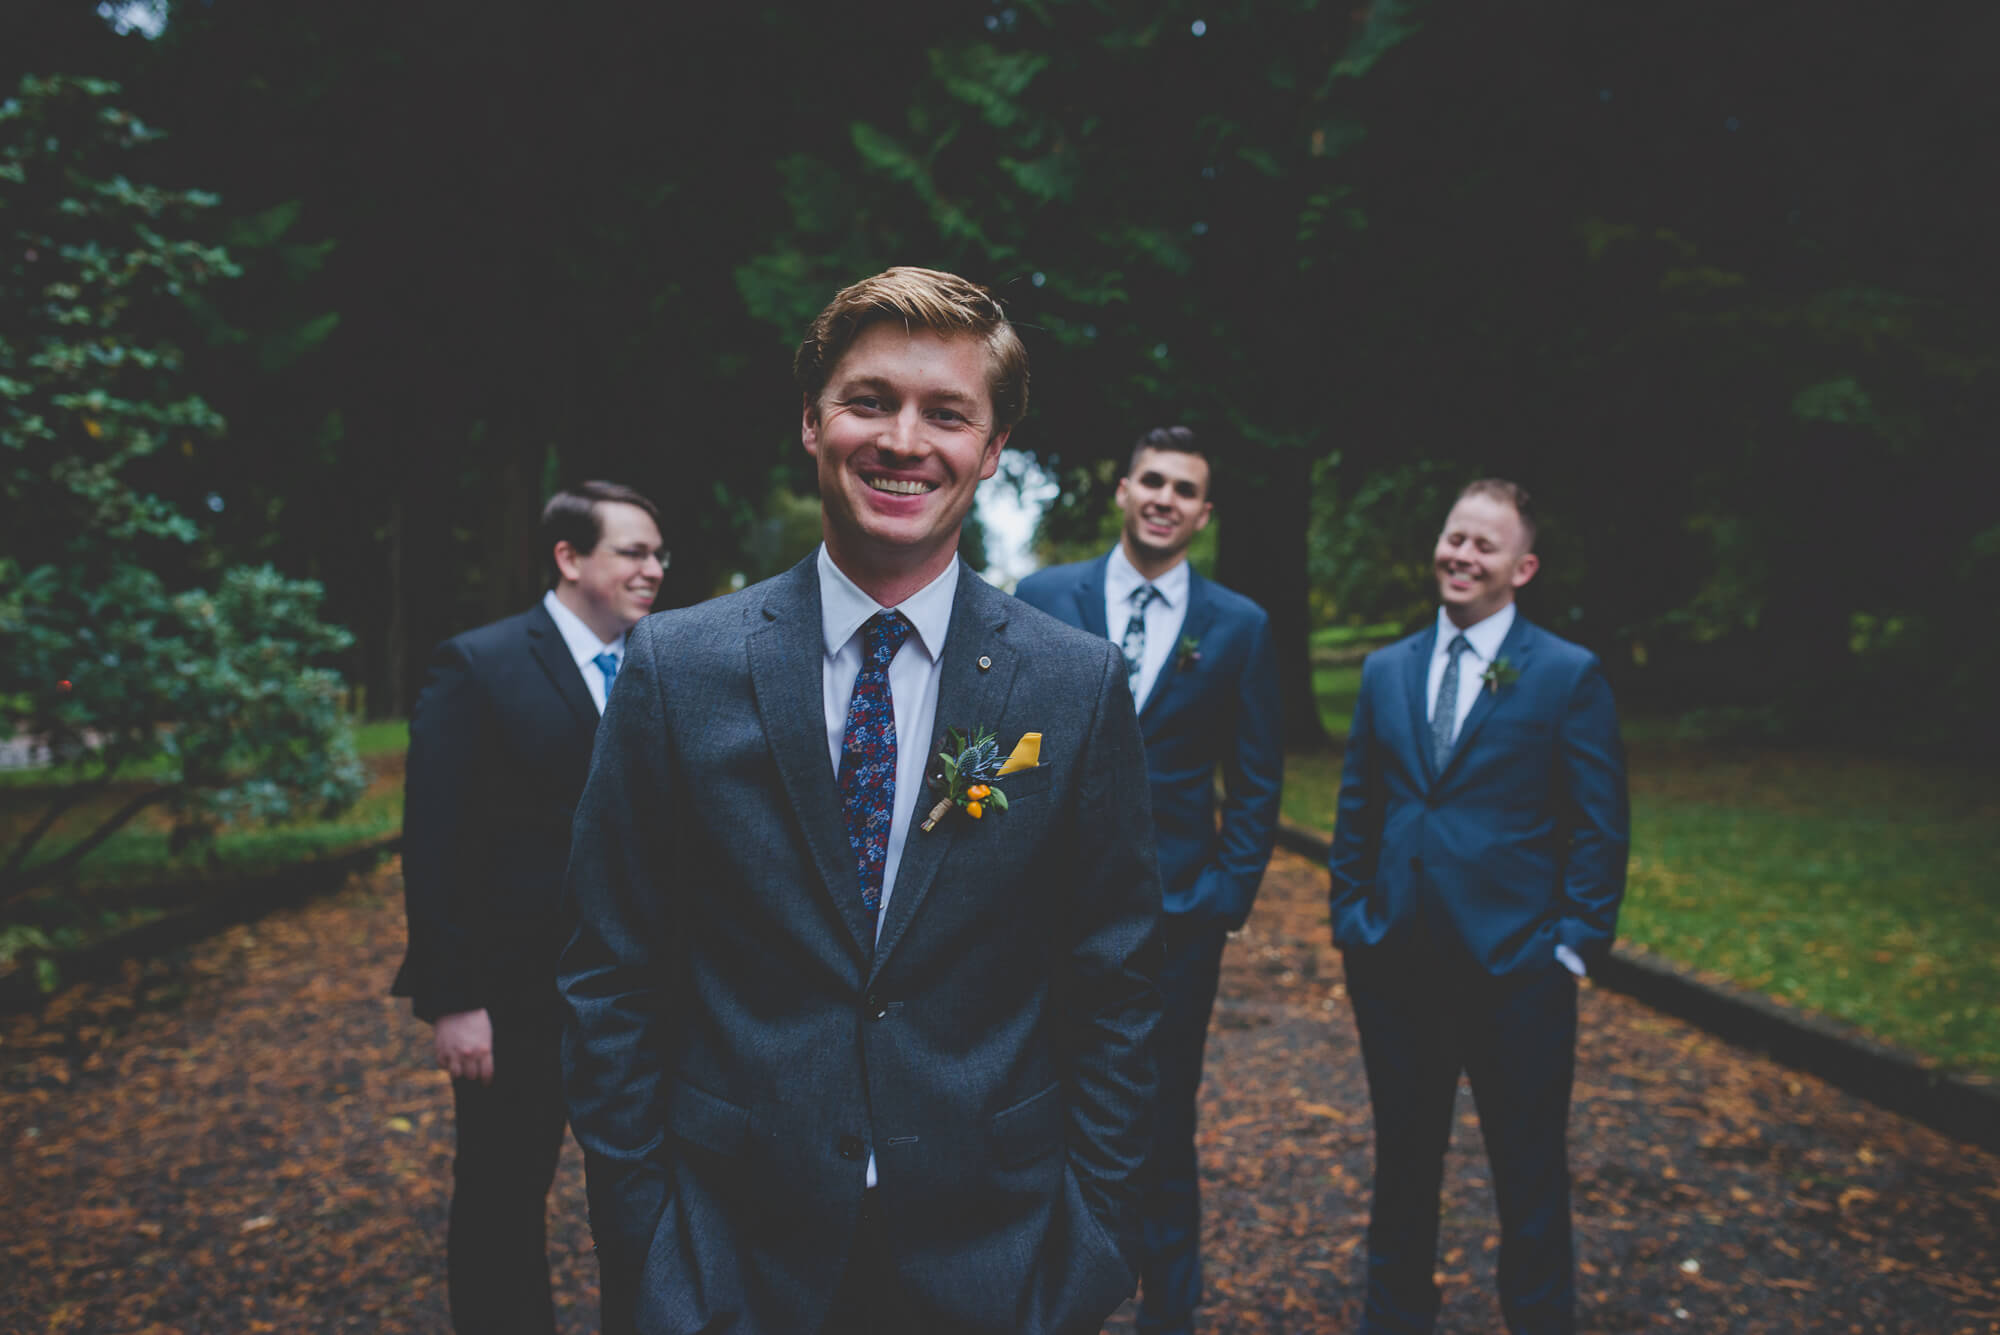 groom and groomsmen laugh together during wedding party portraits